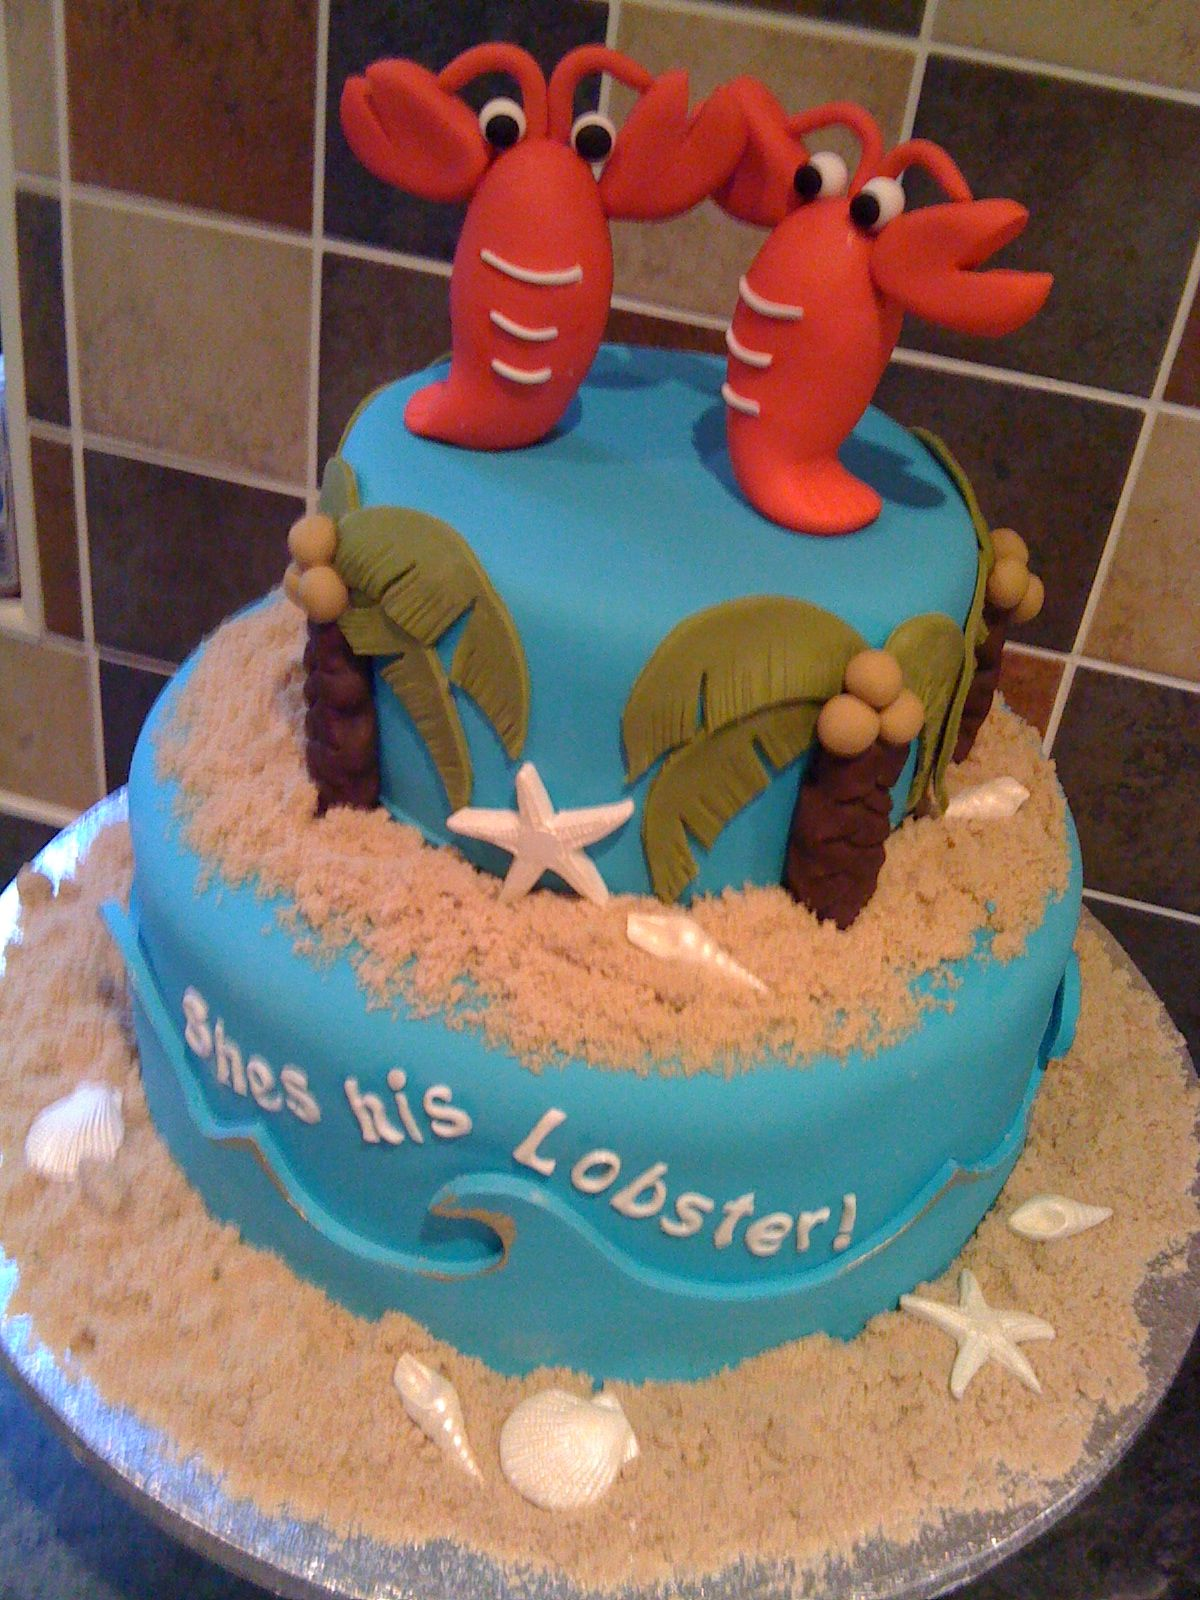 Shes His Lobster Lobster Party Birthday Cakes And Crab Boil Party